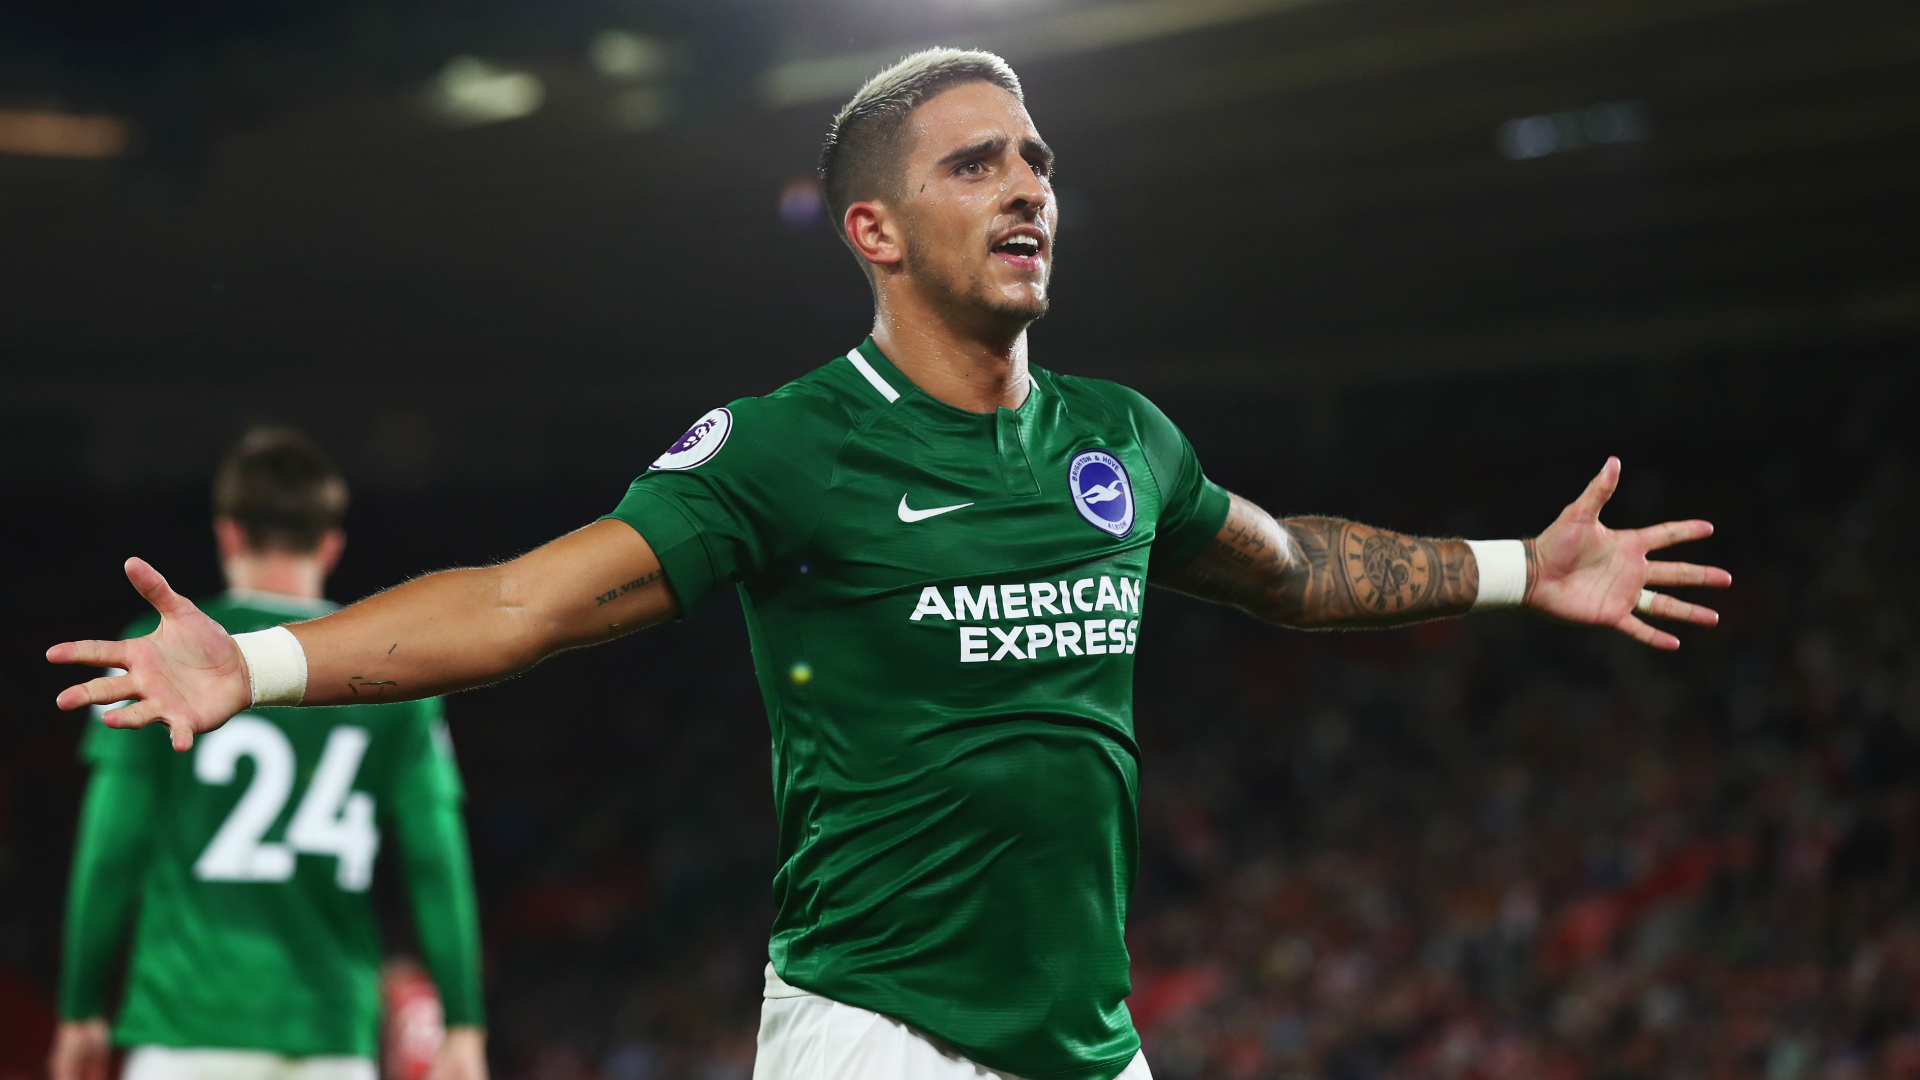 Brighton star Knockaert reveals battle with depression